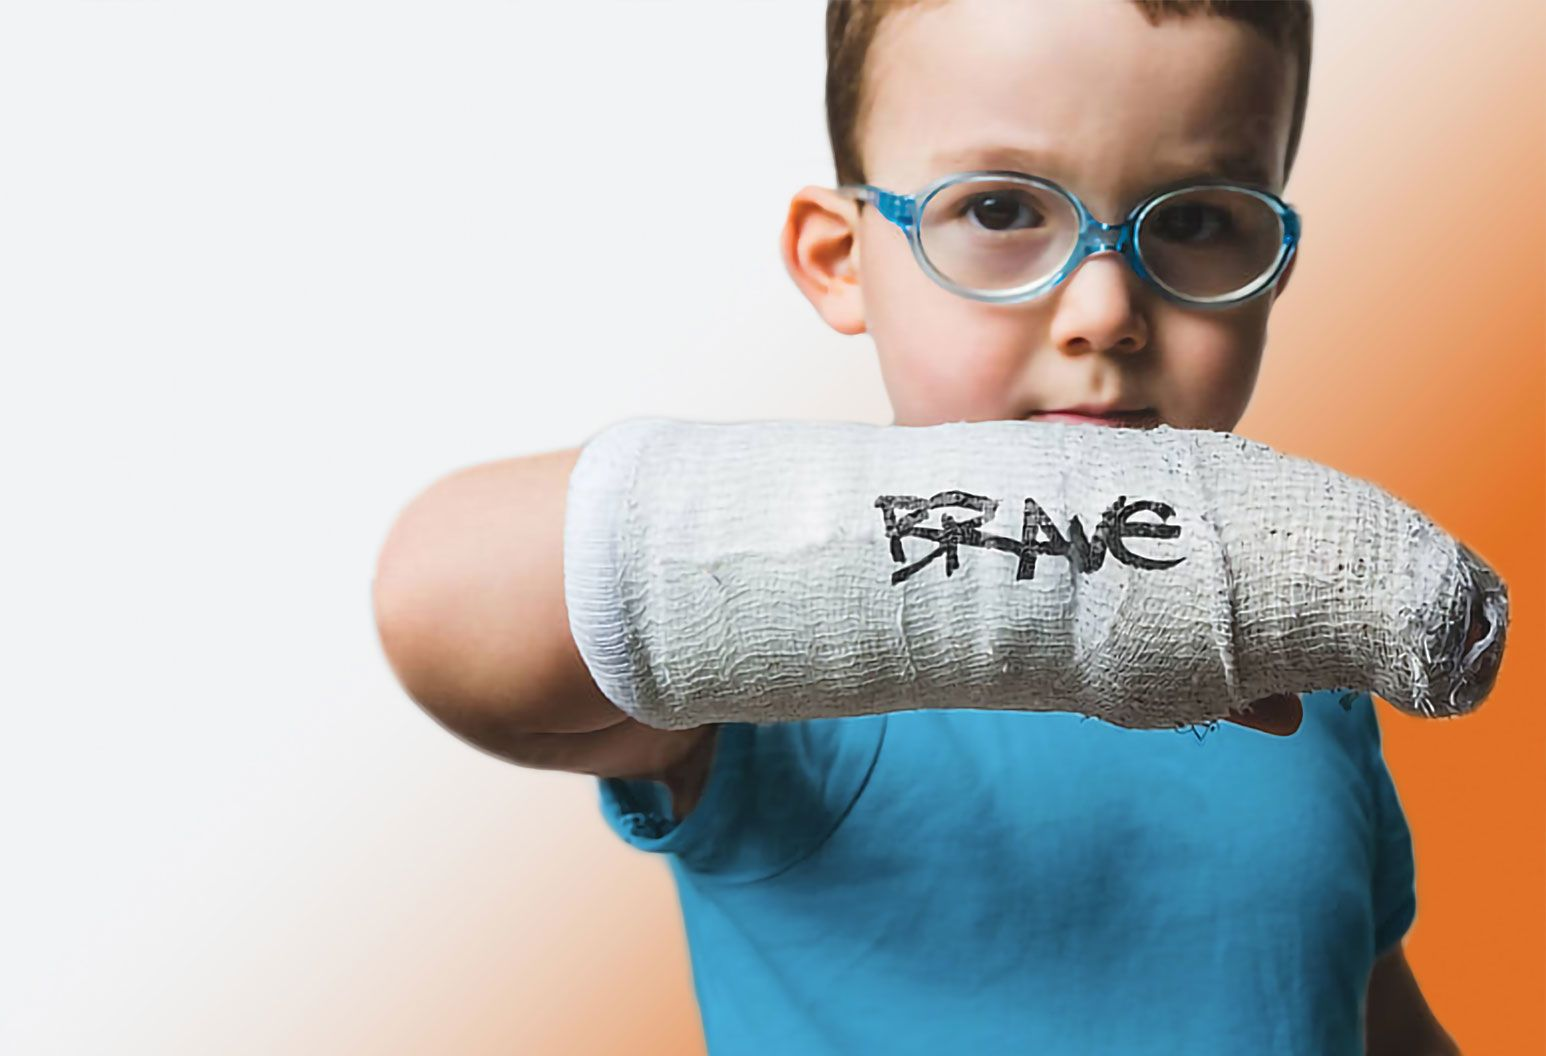 a young boy shows off his courageous injury, proving he his brave